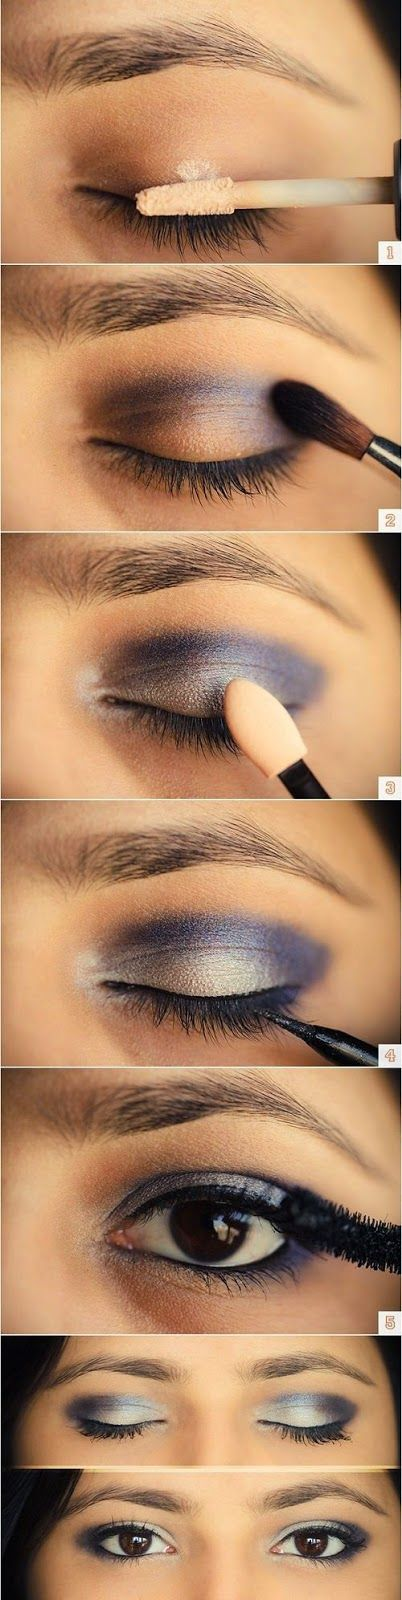 Daily Fash For Fashion : Makeup Tutorial for Brown Eyes